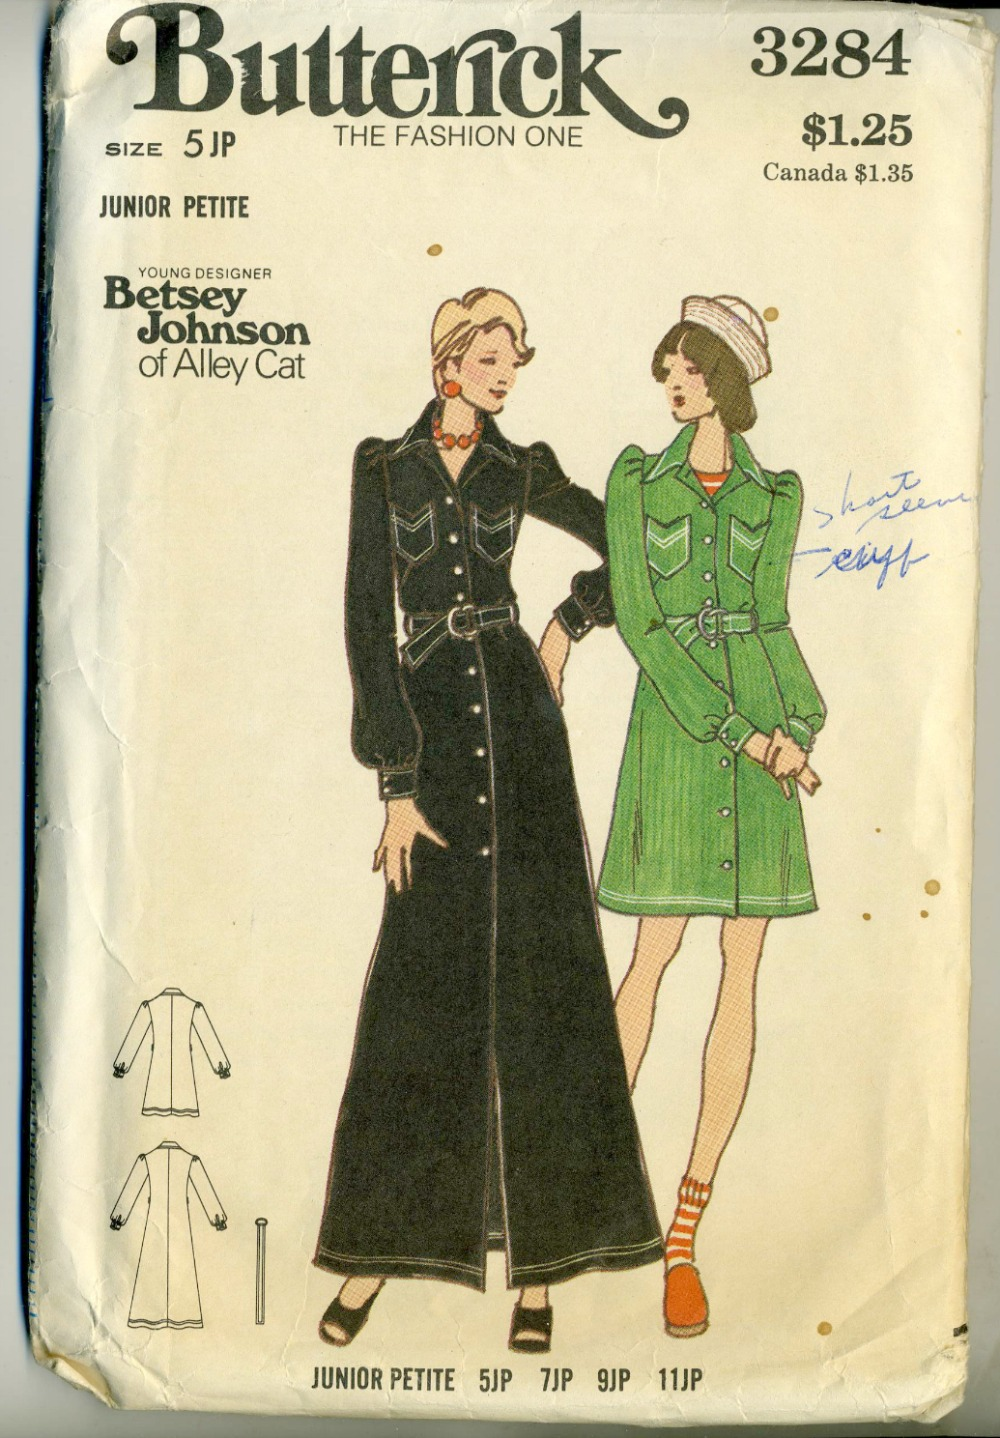 Butterick 3284 b vintage sewing patterns fandom powered by wikia butterick 3284001 jeuxipadfo Gallery